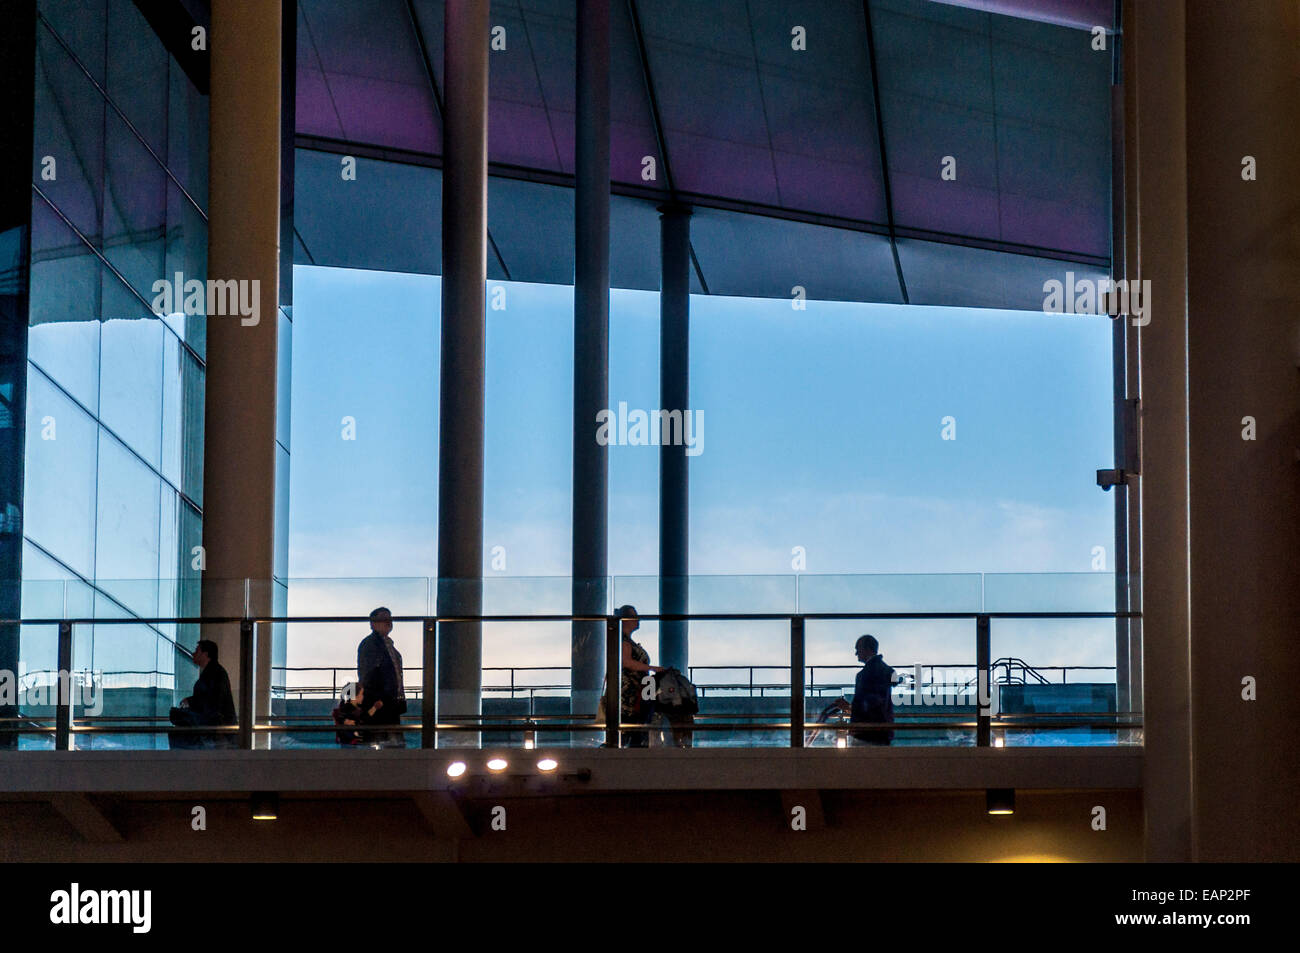 Terminal Two Passengers on walkway at new terminal building at London Heathrow Airport - Stock Image